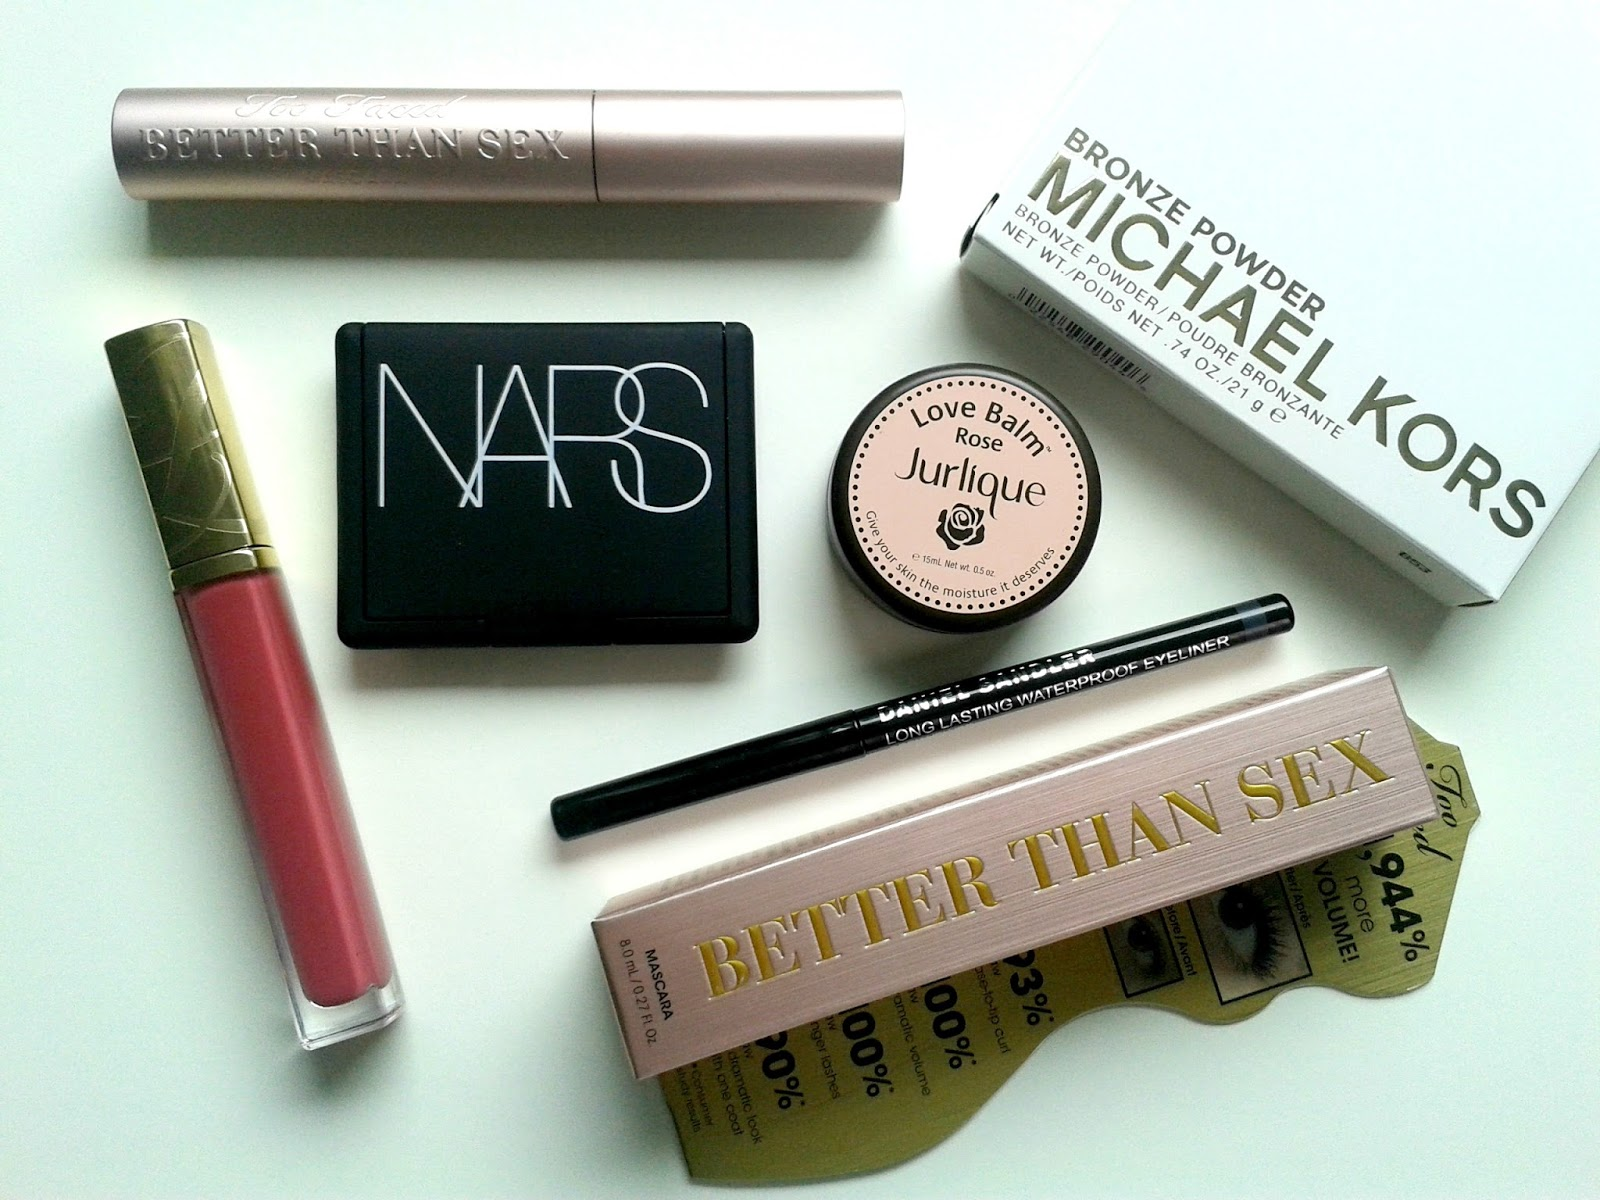 Ellis Tuesday's Summer Sun-days: Luxury Make-up Beauty Review Estee Lauder NARS Jurlique Michael Kors Too Faced Daniel Sandler